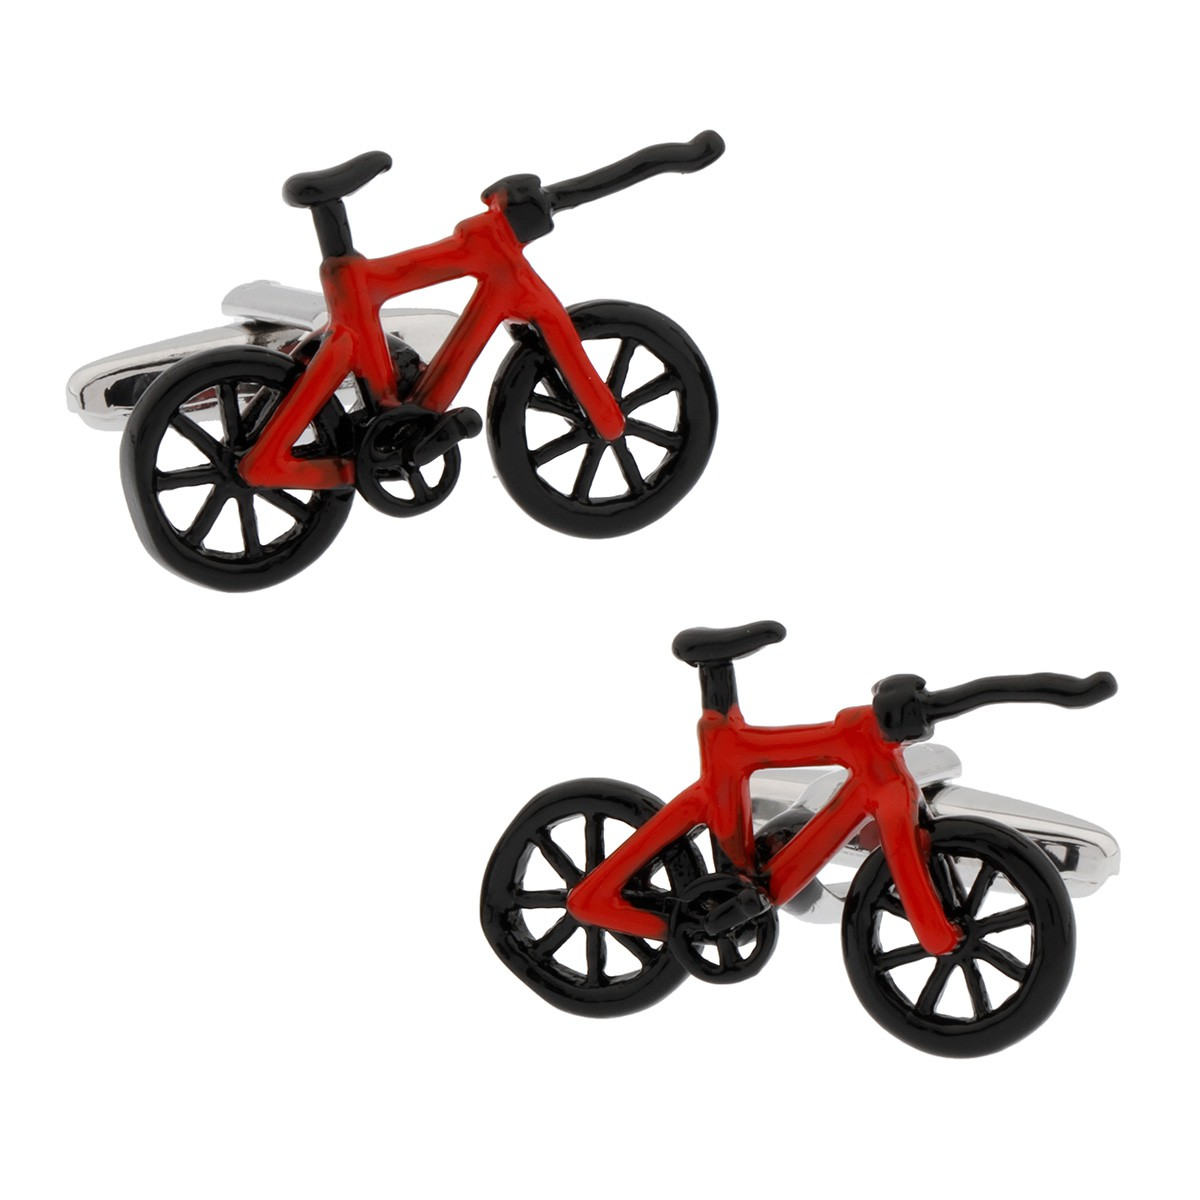 Black and red bicycle cufflinks